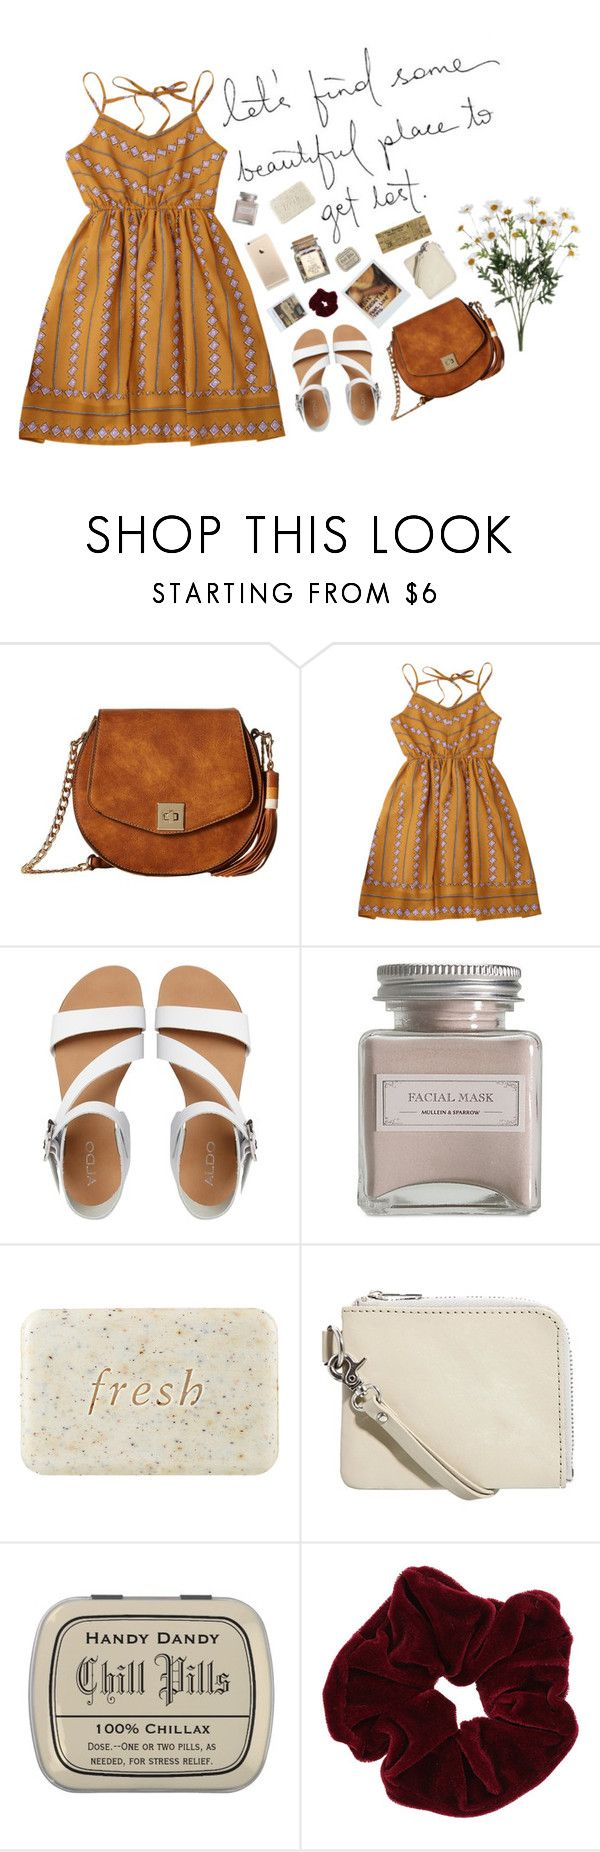 """""""CREATIVE"""" by sydnaayyy-13 ❤ liked on Polyvore featuring Gabriella Rocha, ALDO, Mullein & Sparrow, Polaroid, Fresh, Cheap Monday and Miss Selfridge"""